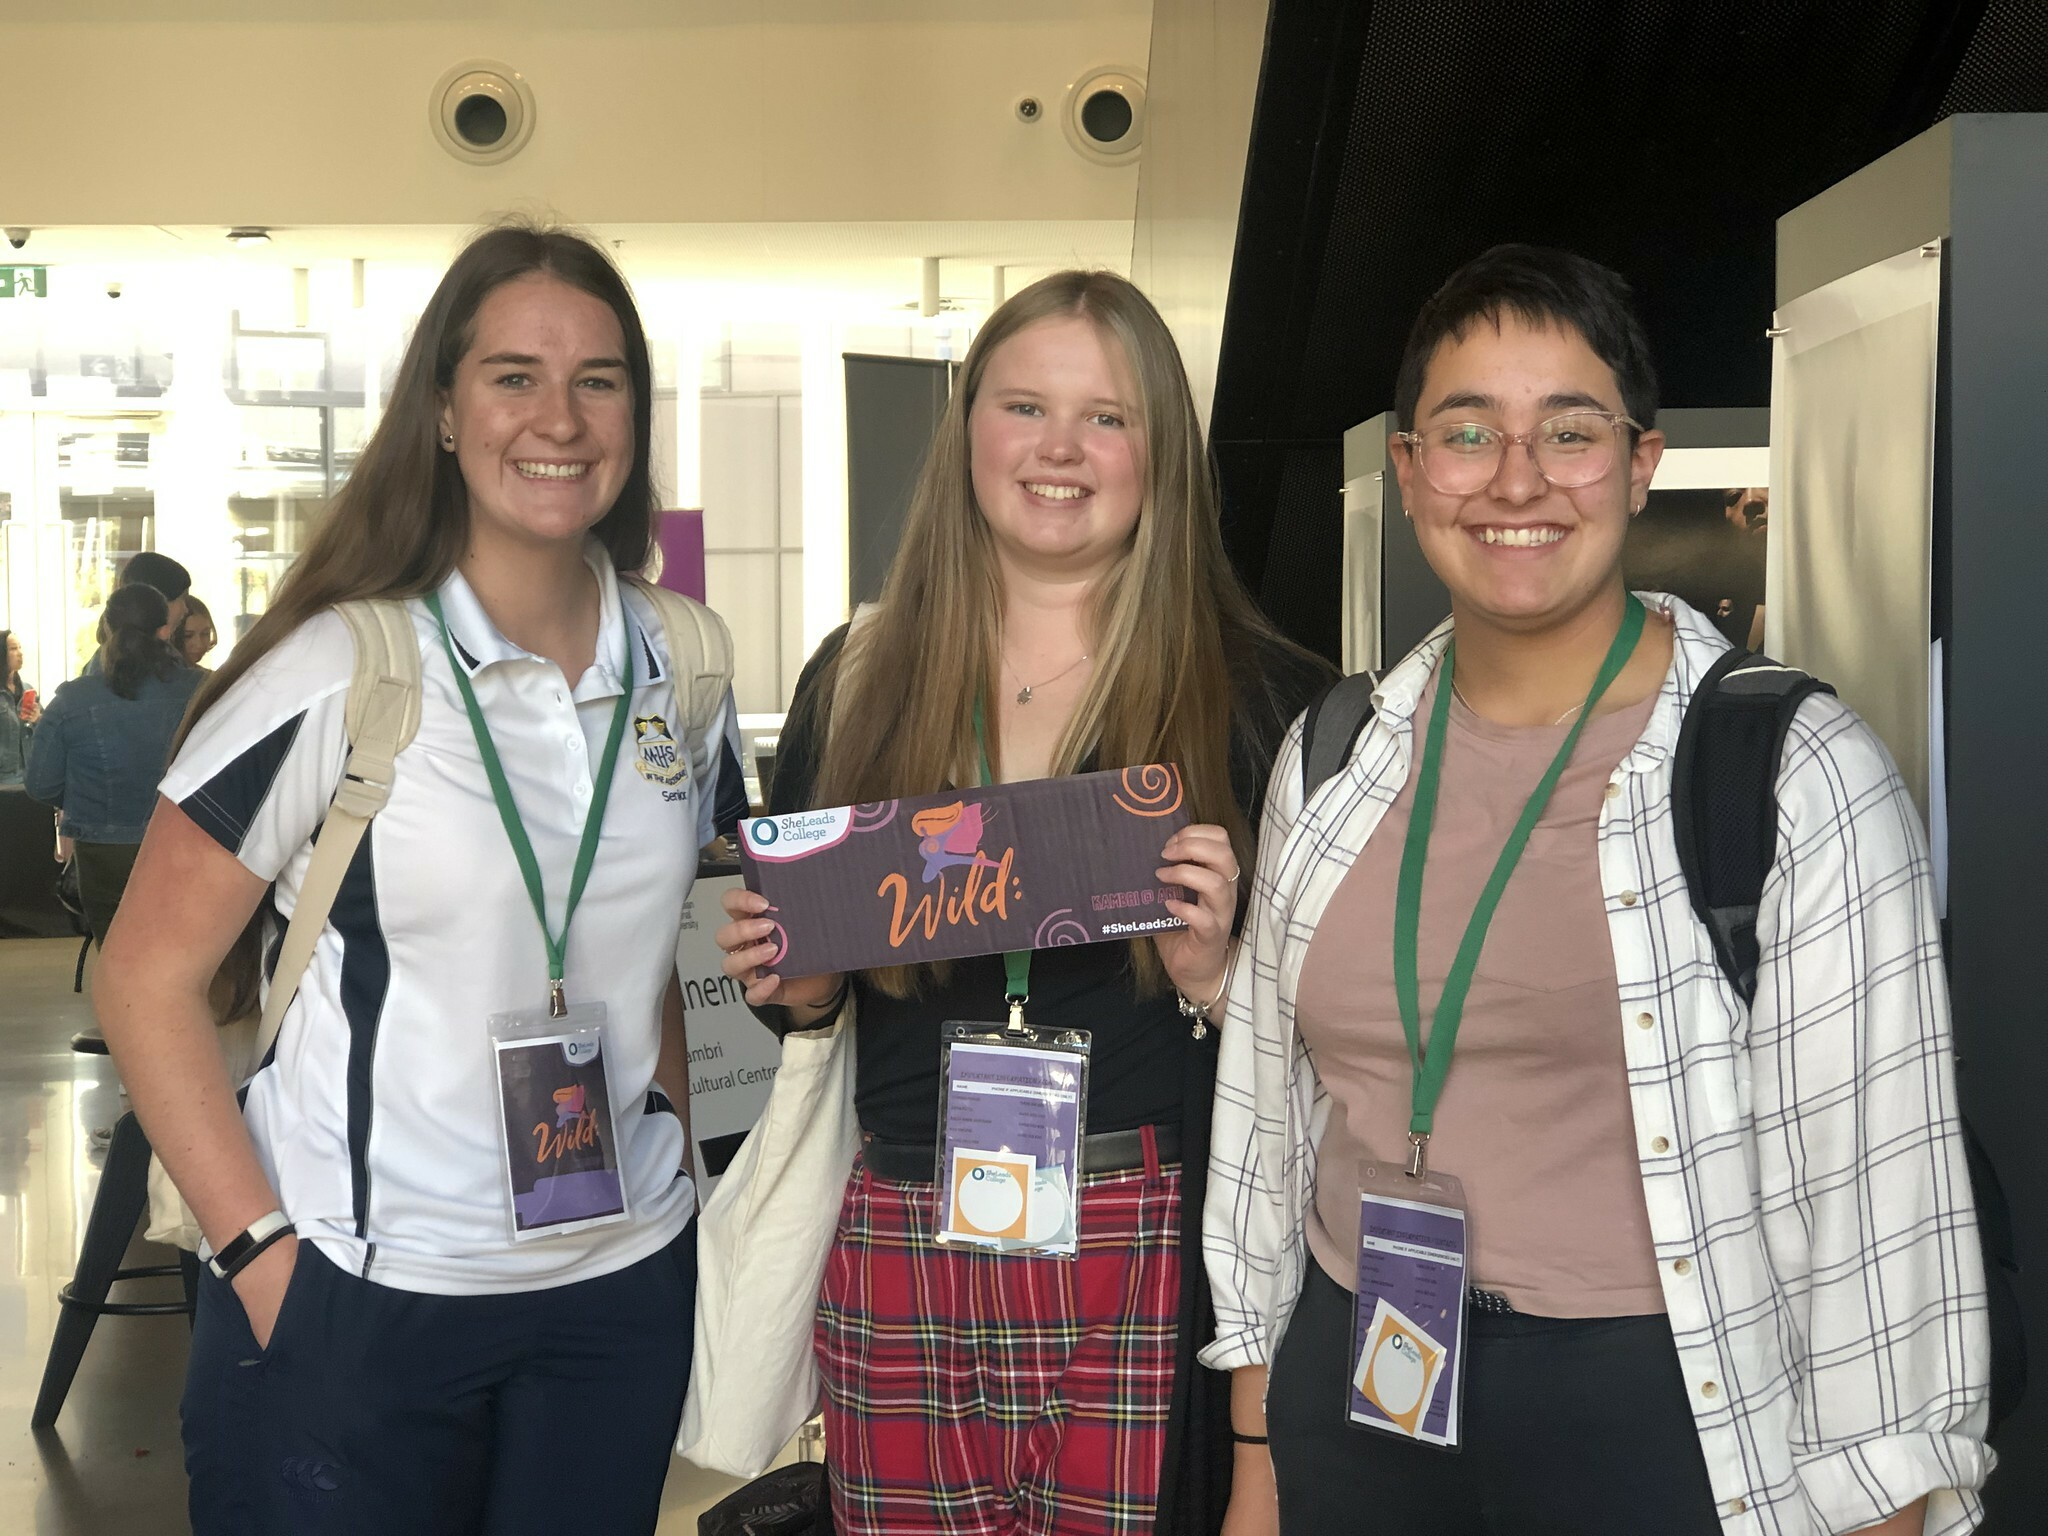 photos of three girls holding a she leads conference sign that says wild